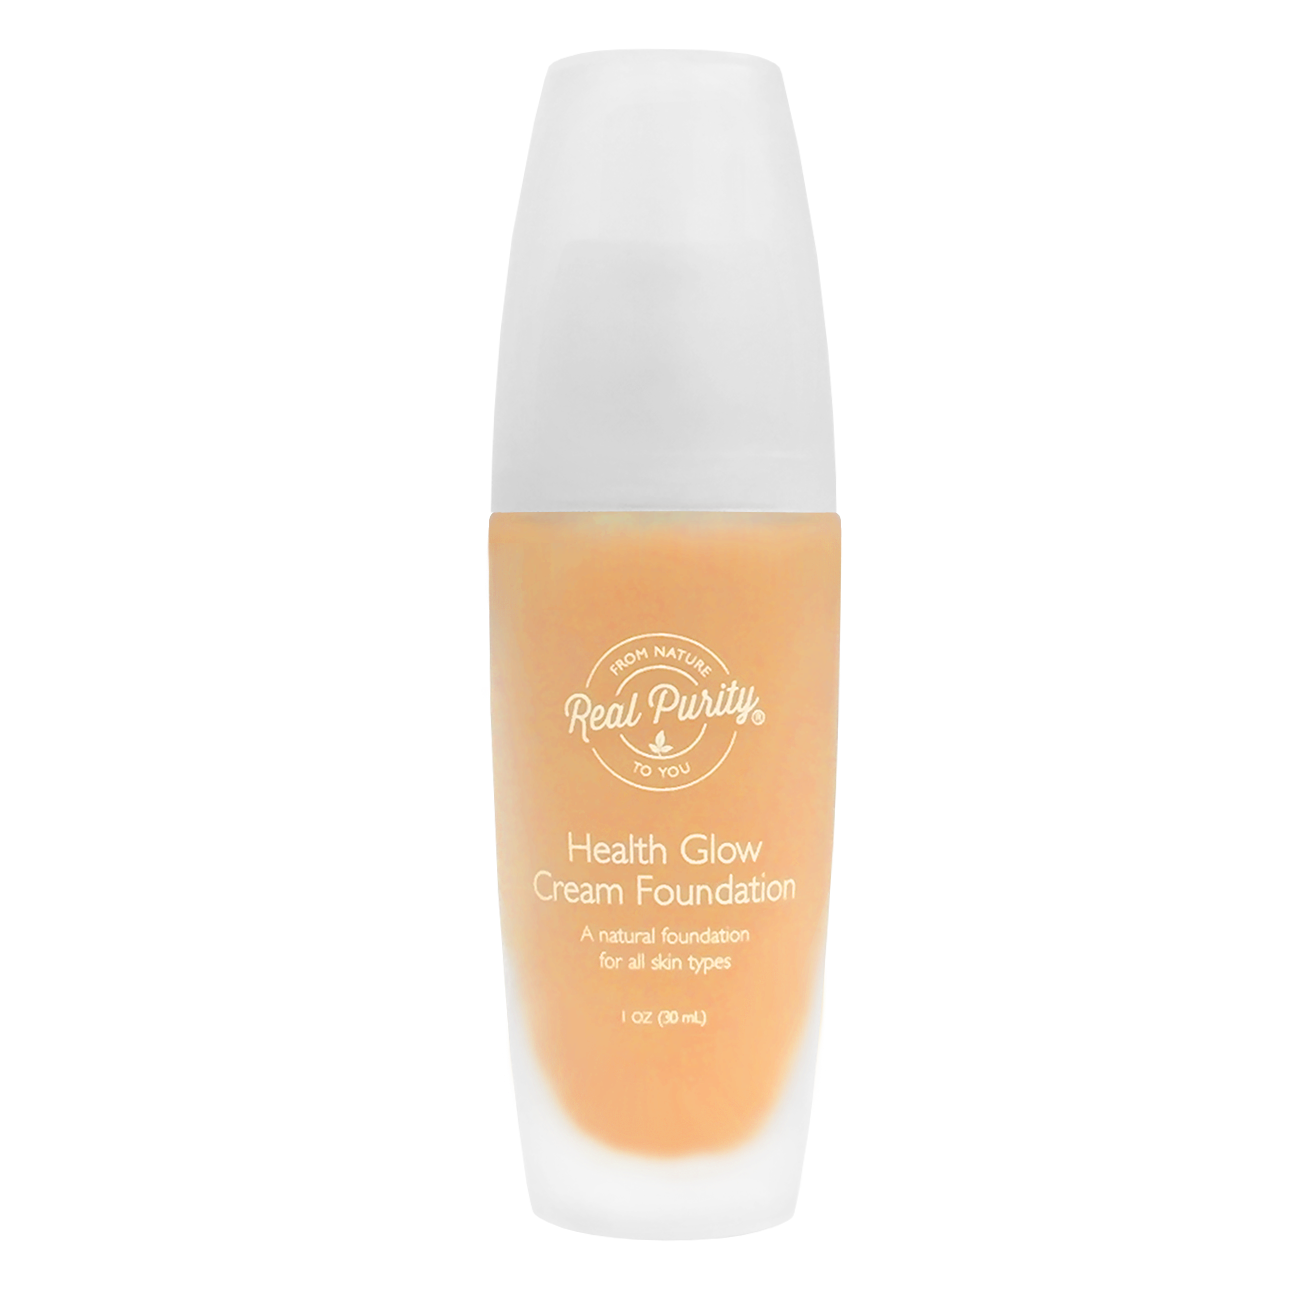 Health Glow Cream Foundation: Natural